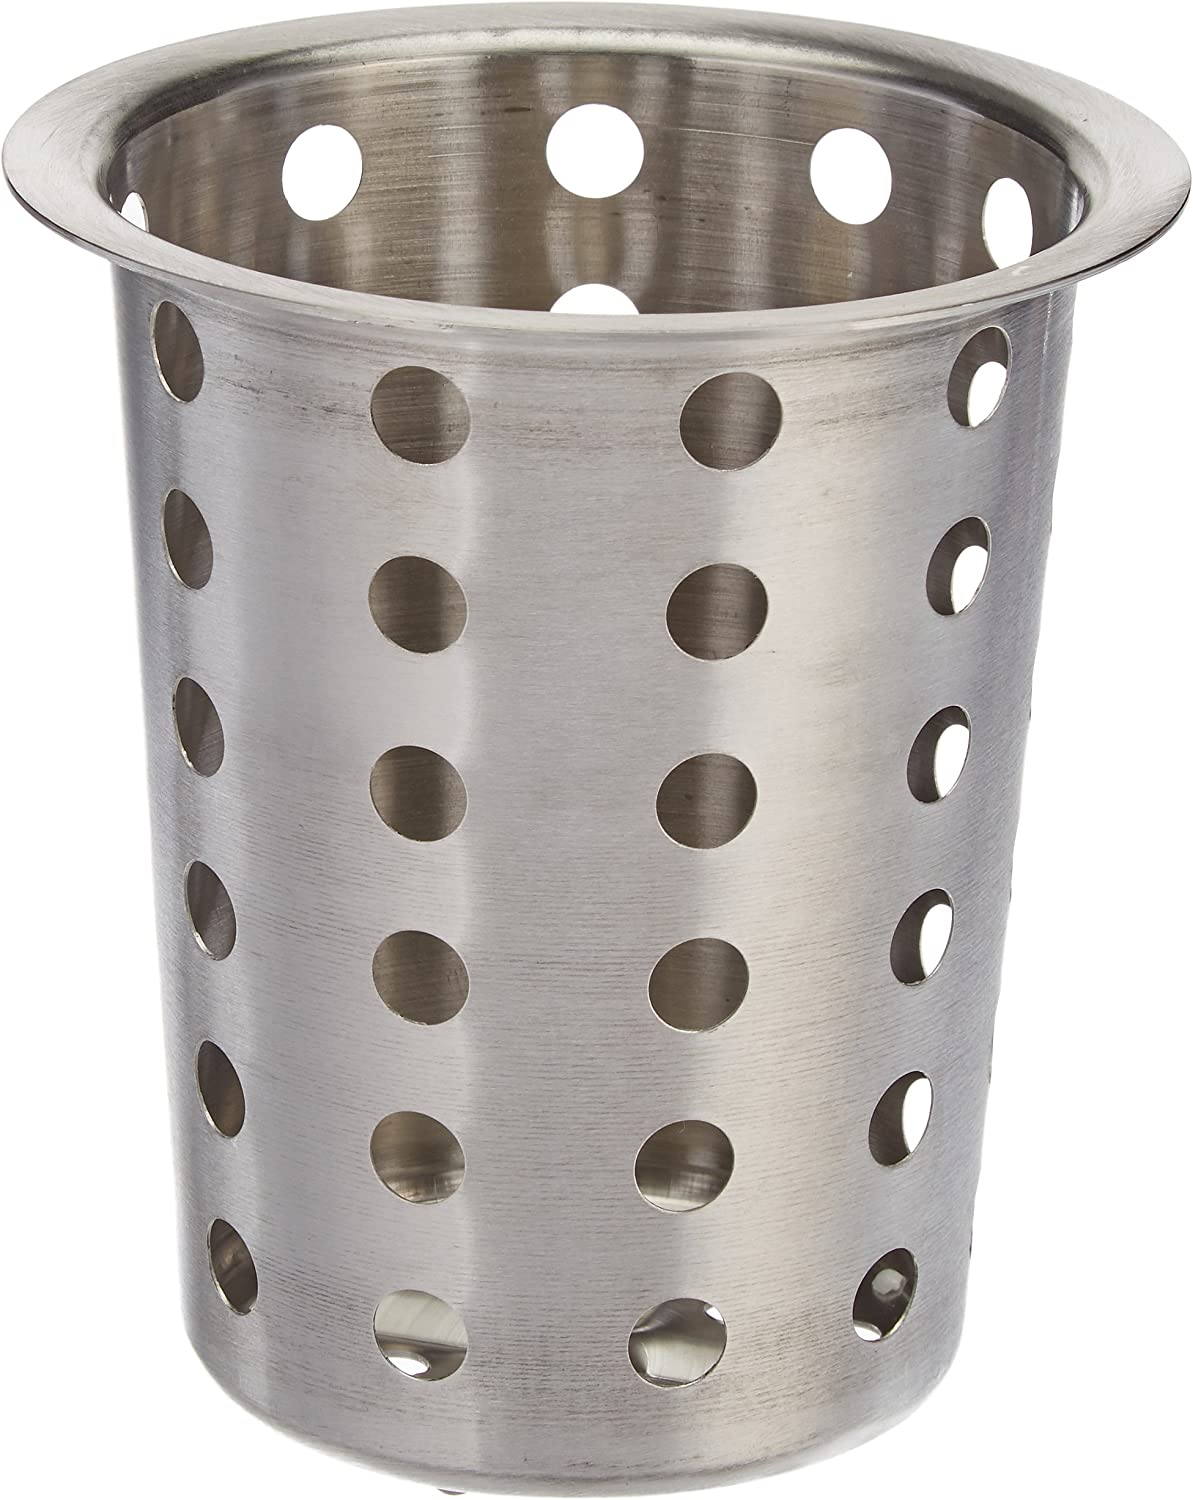 Winco Flatware Cylinder, Stainless Steel